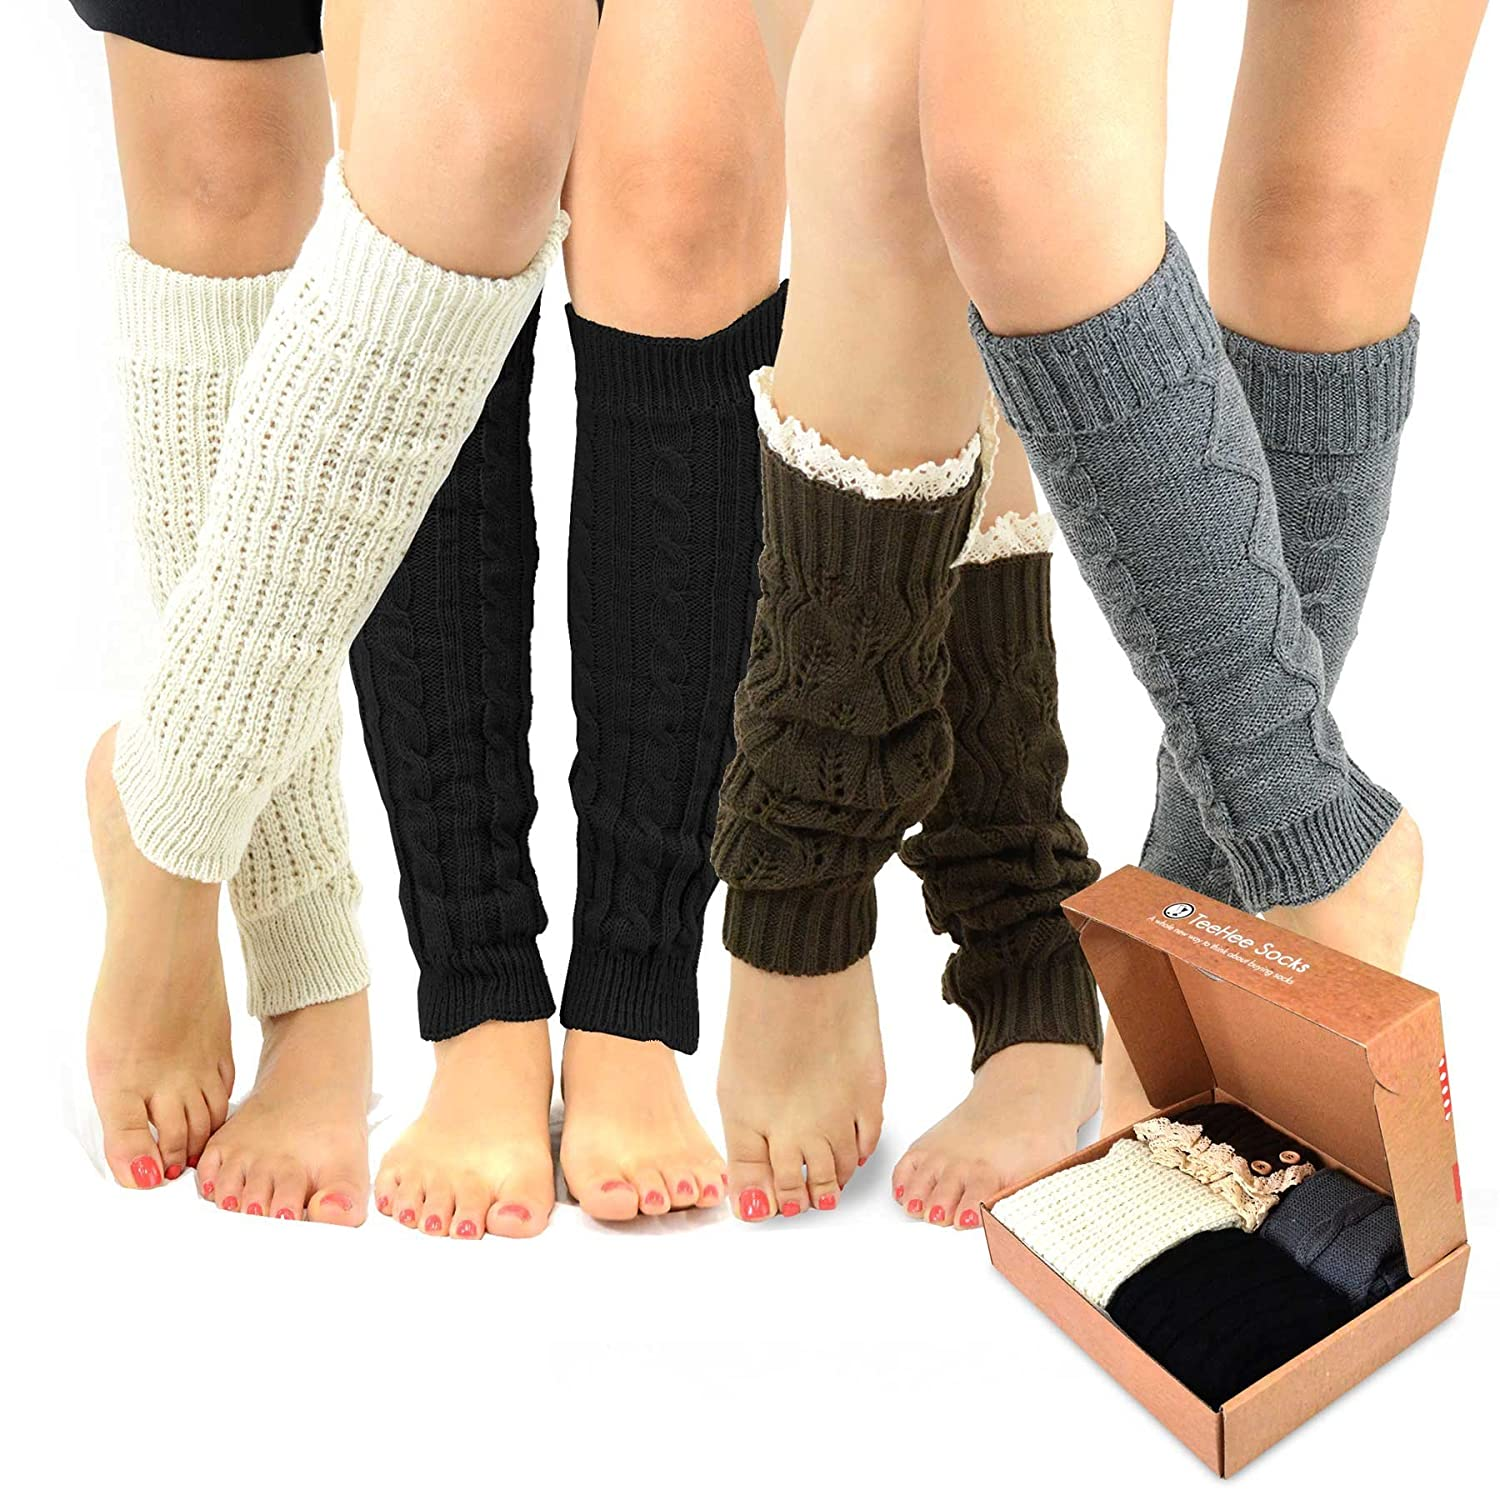 TeeHee Gift Box Women's Fashion Leg Warmers 4-Pack Assorted Colors Soxnet Inc